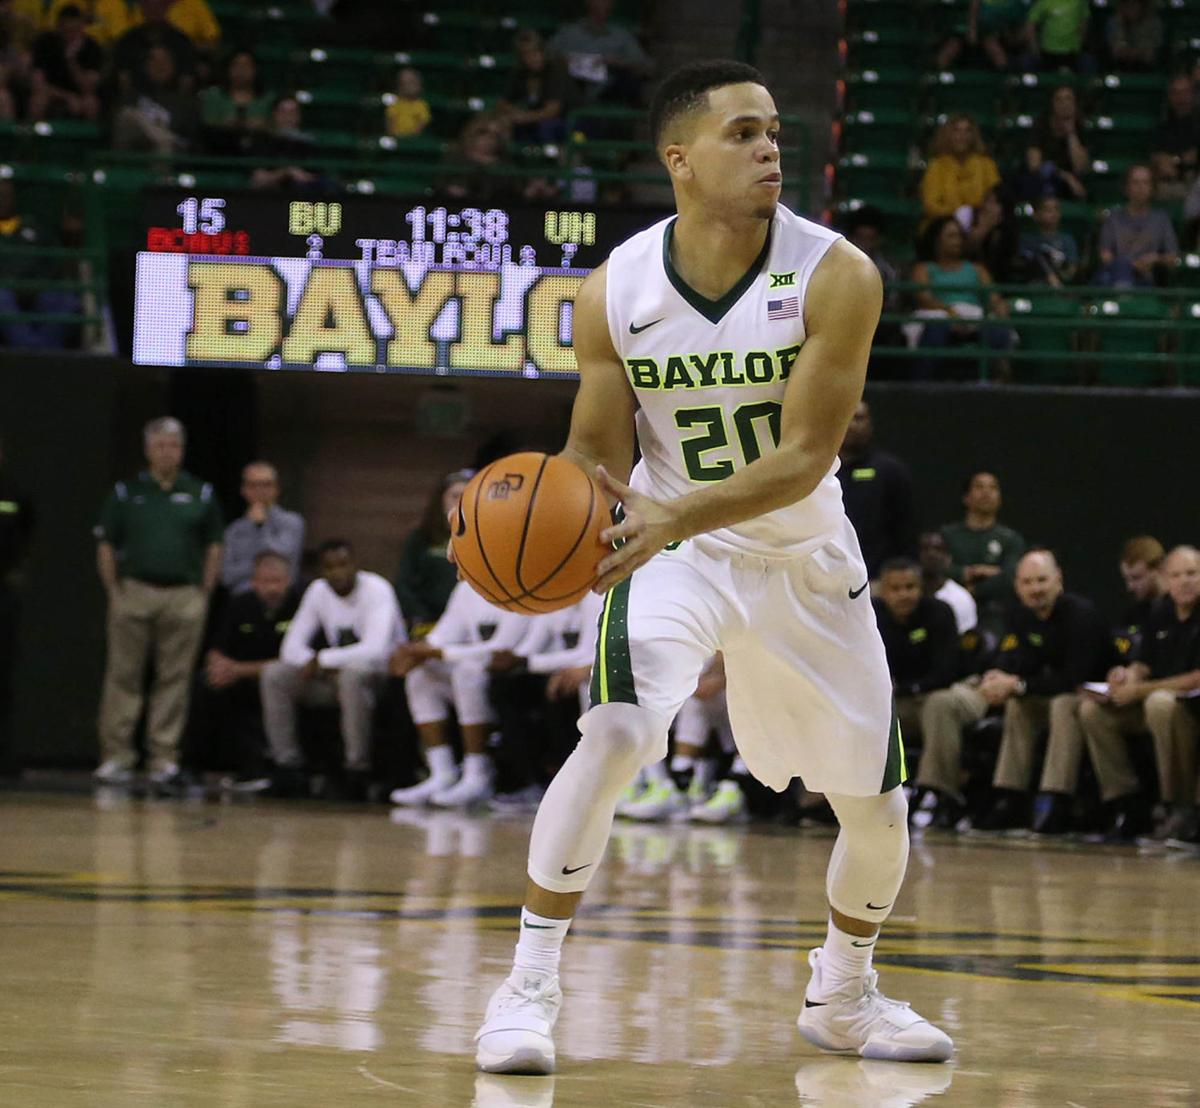 Baylor men basketball